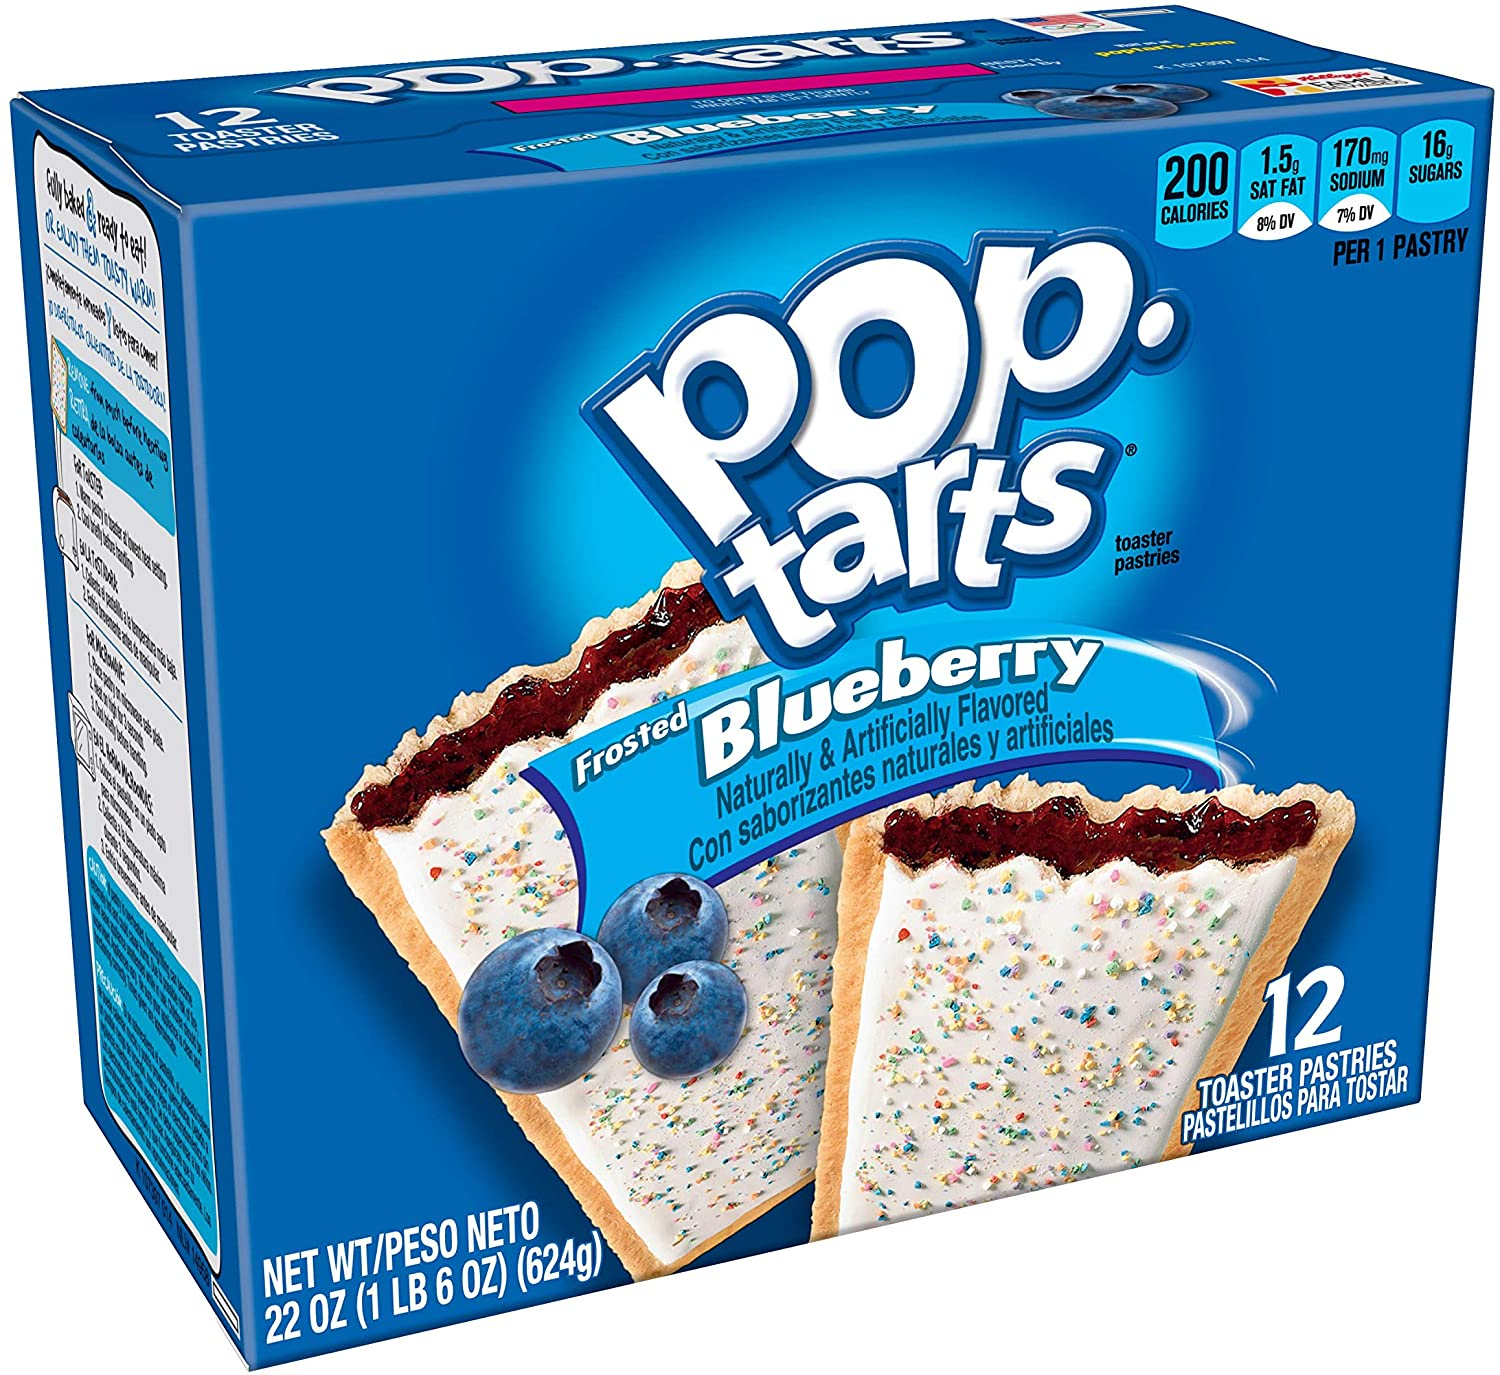 Pop Tarts Frosted blueberry (12 unidades)